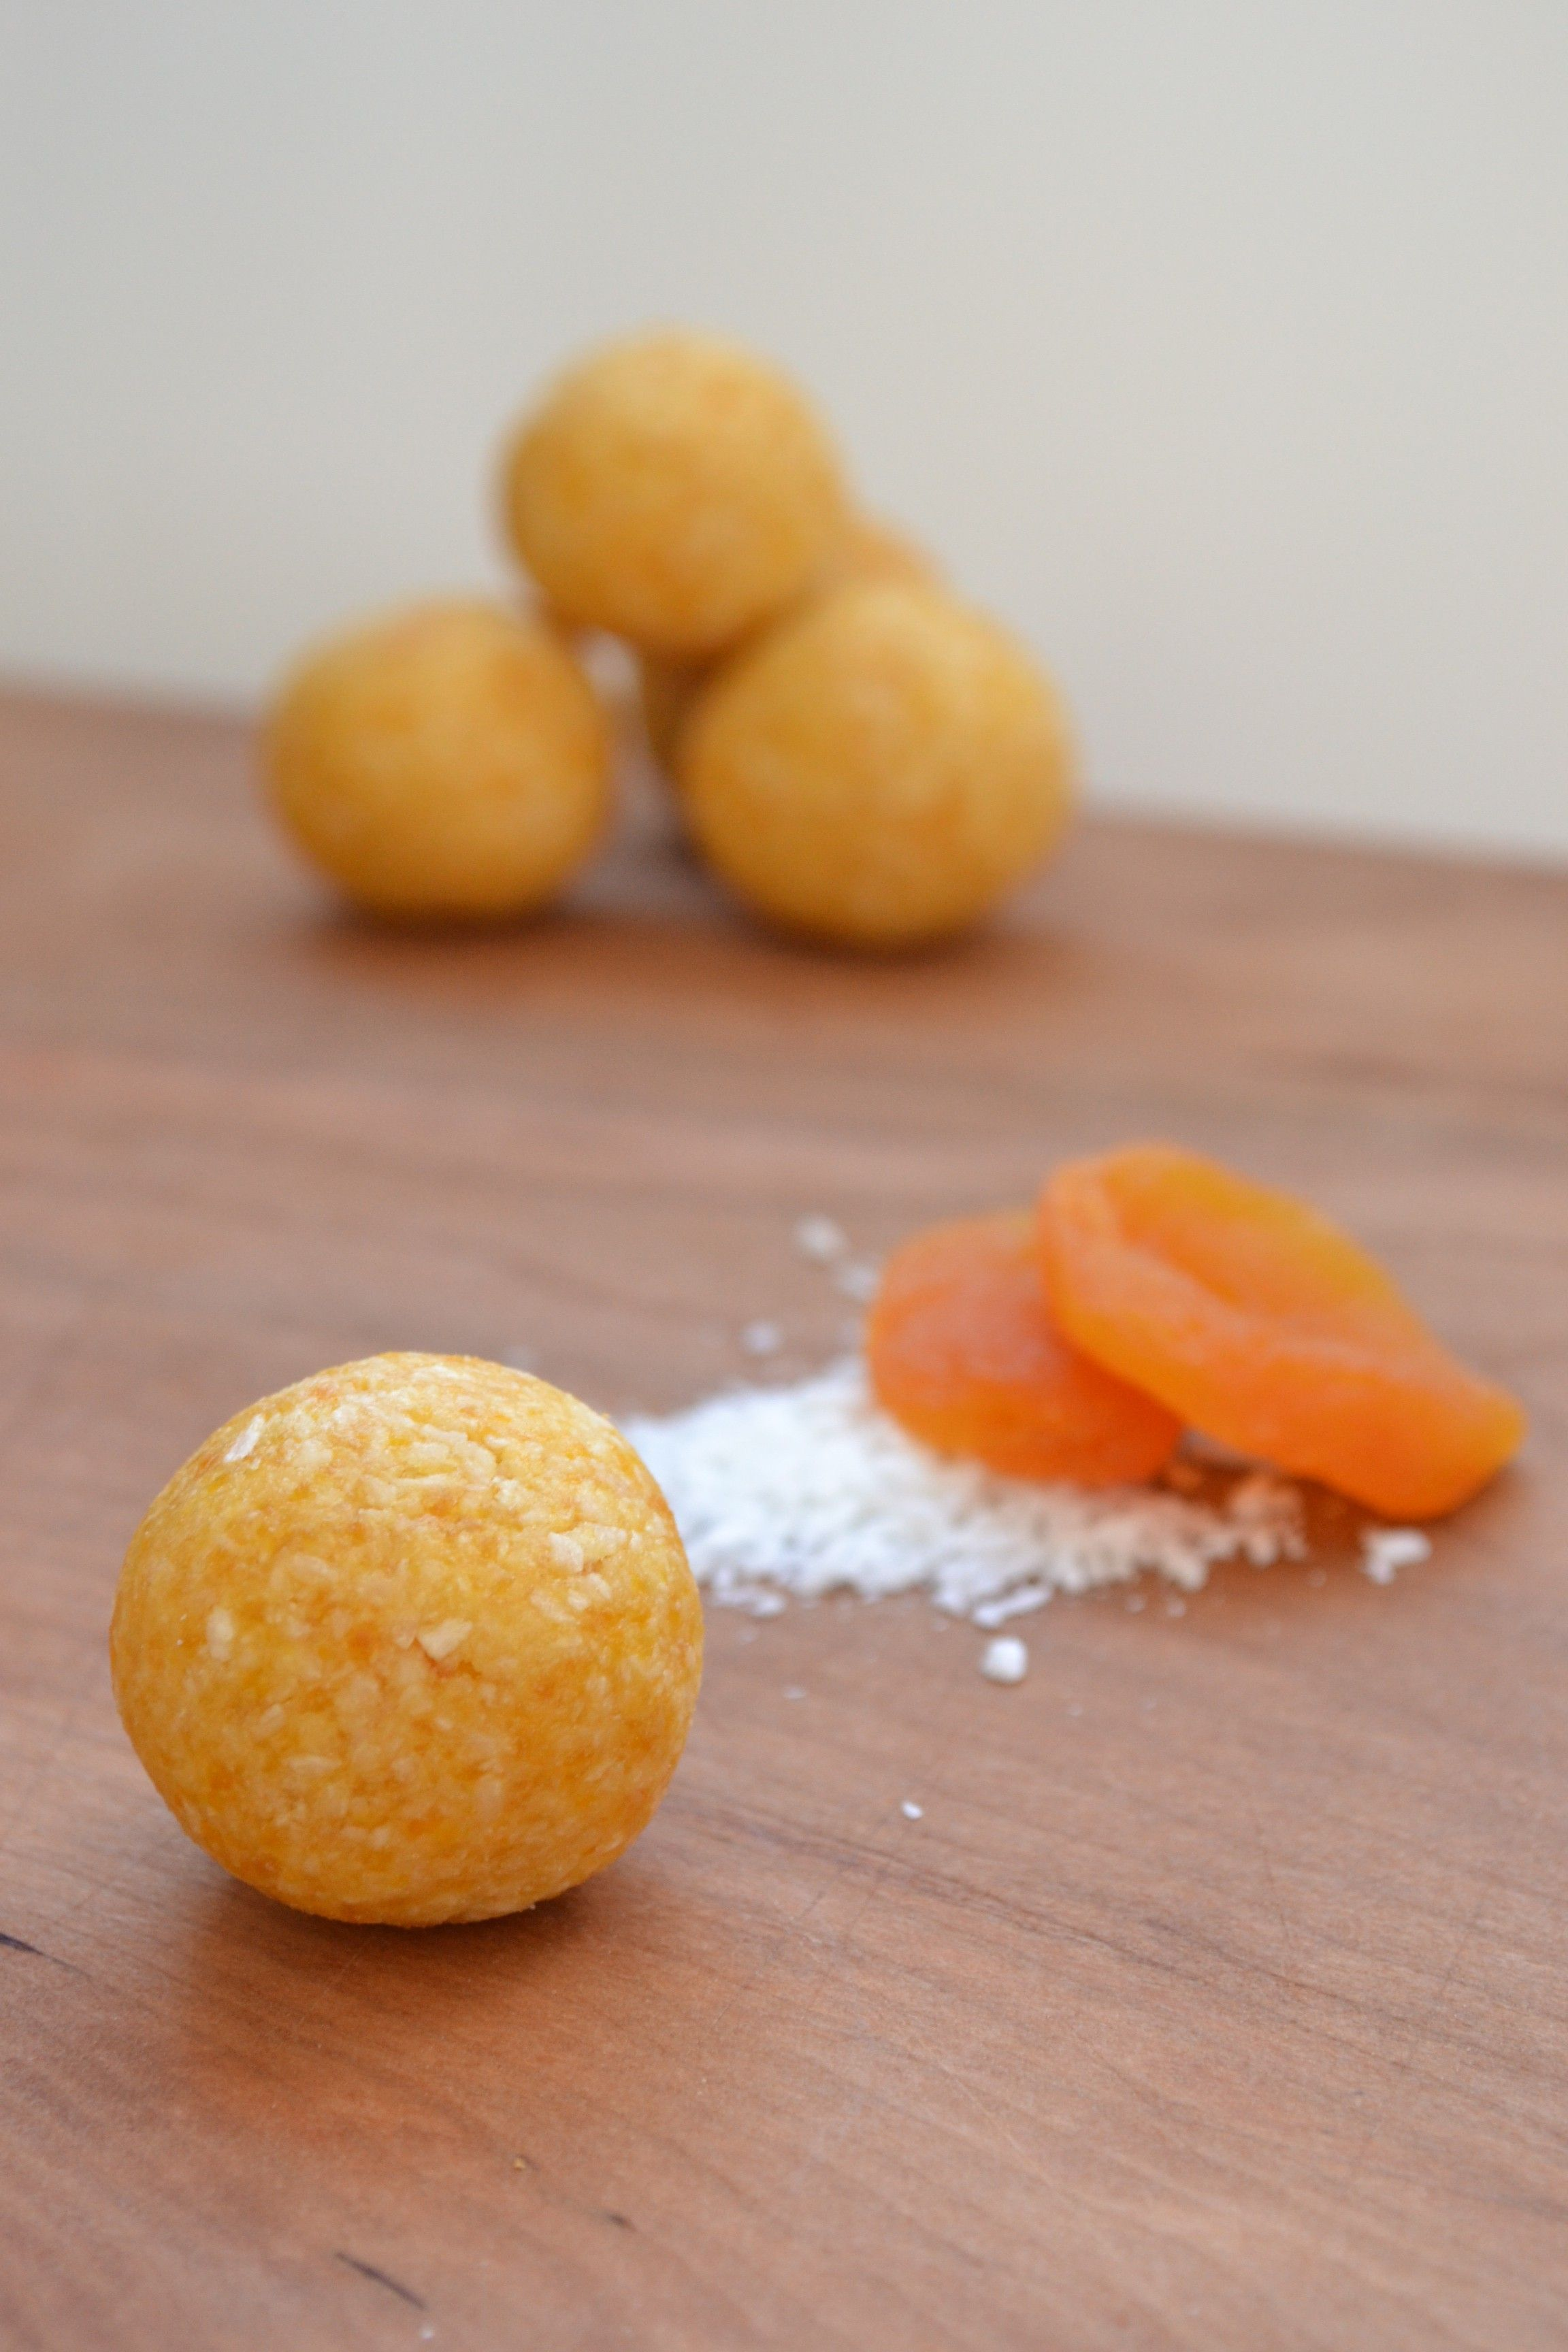 Coconut Apricot Bites. These are so delish and require zero cooking. A quick whirl in the food processor and you are done. Very simple and only a few ingredients.